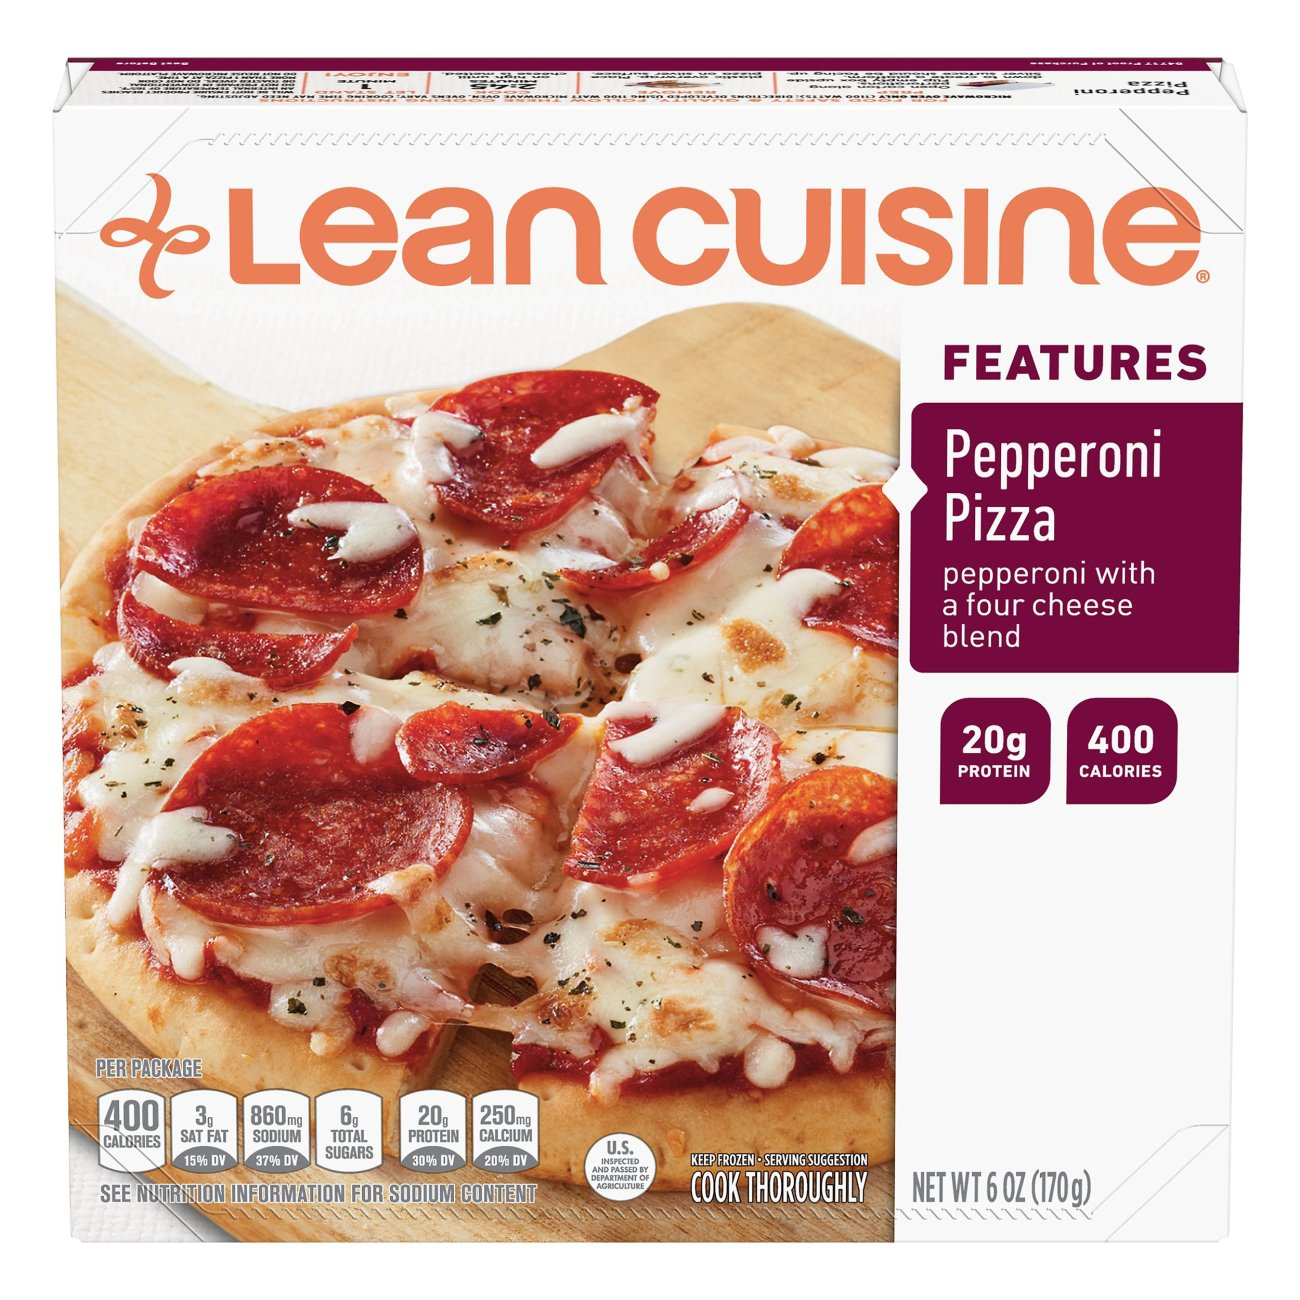 Lean cuisine pizza nutrition facts nutrition ftempo for Are lean cuisine pizzas healthy